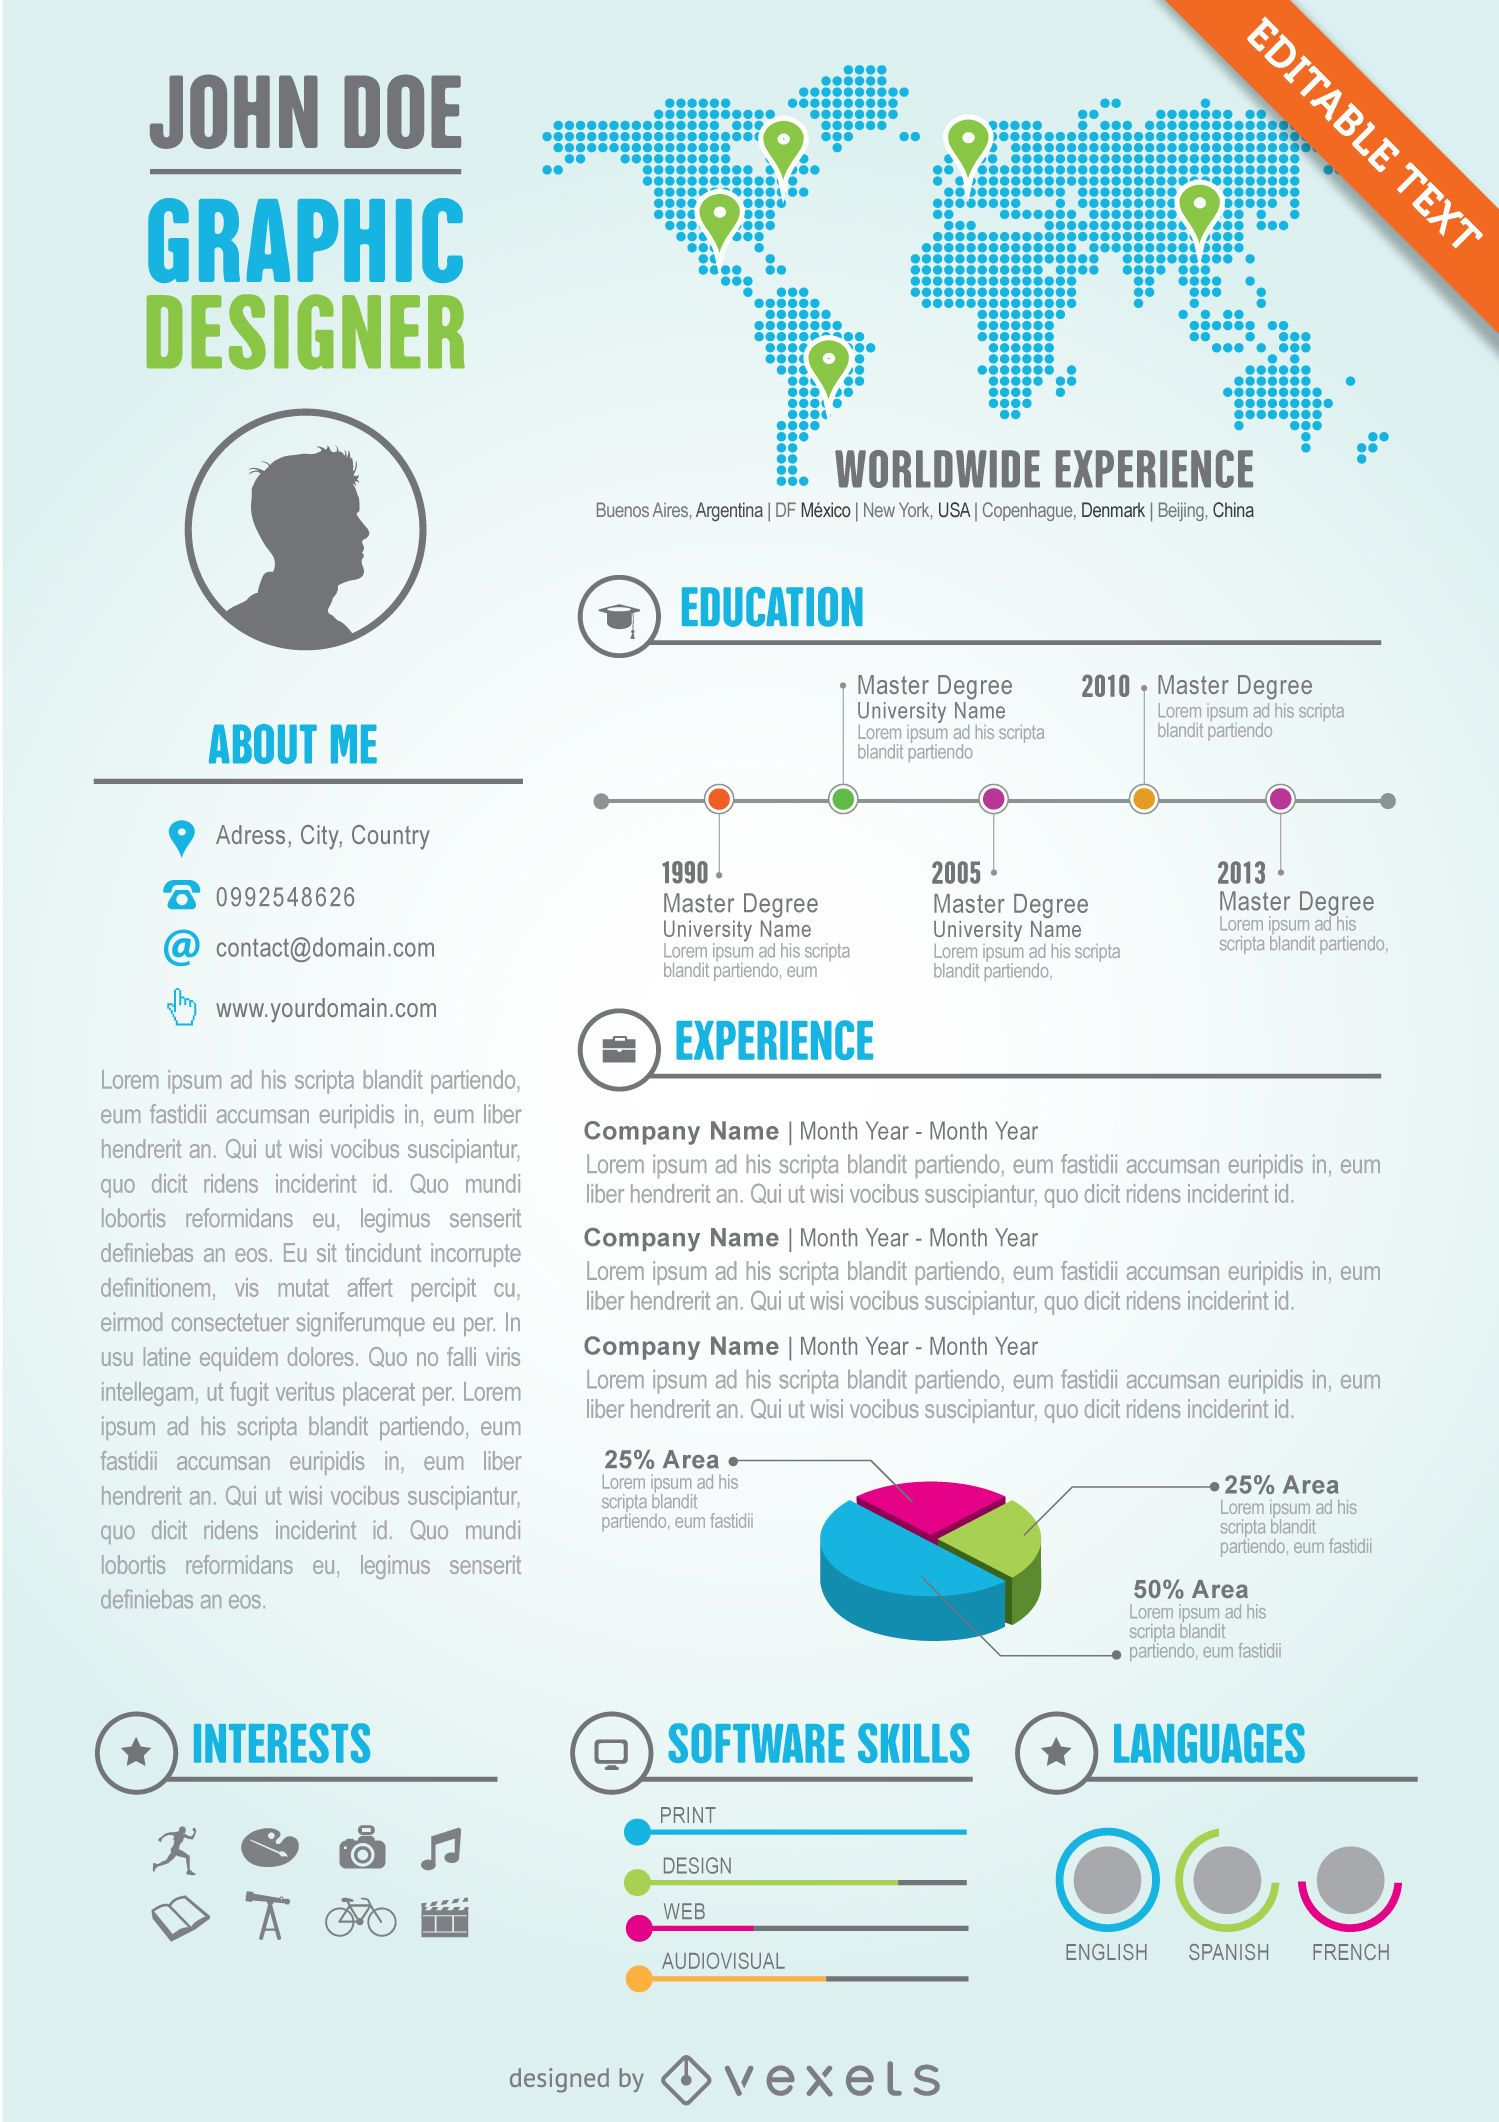 graphic designer editable resume cv template vector